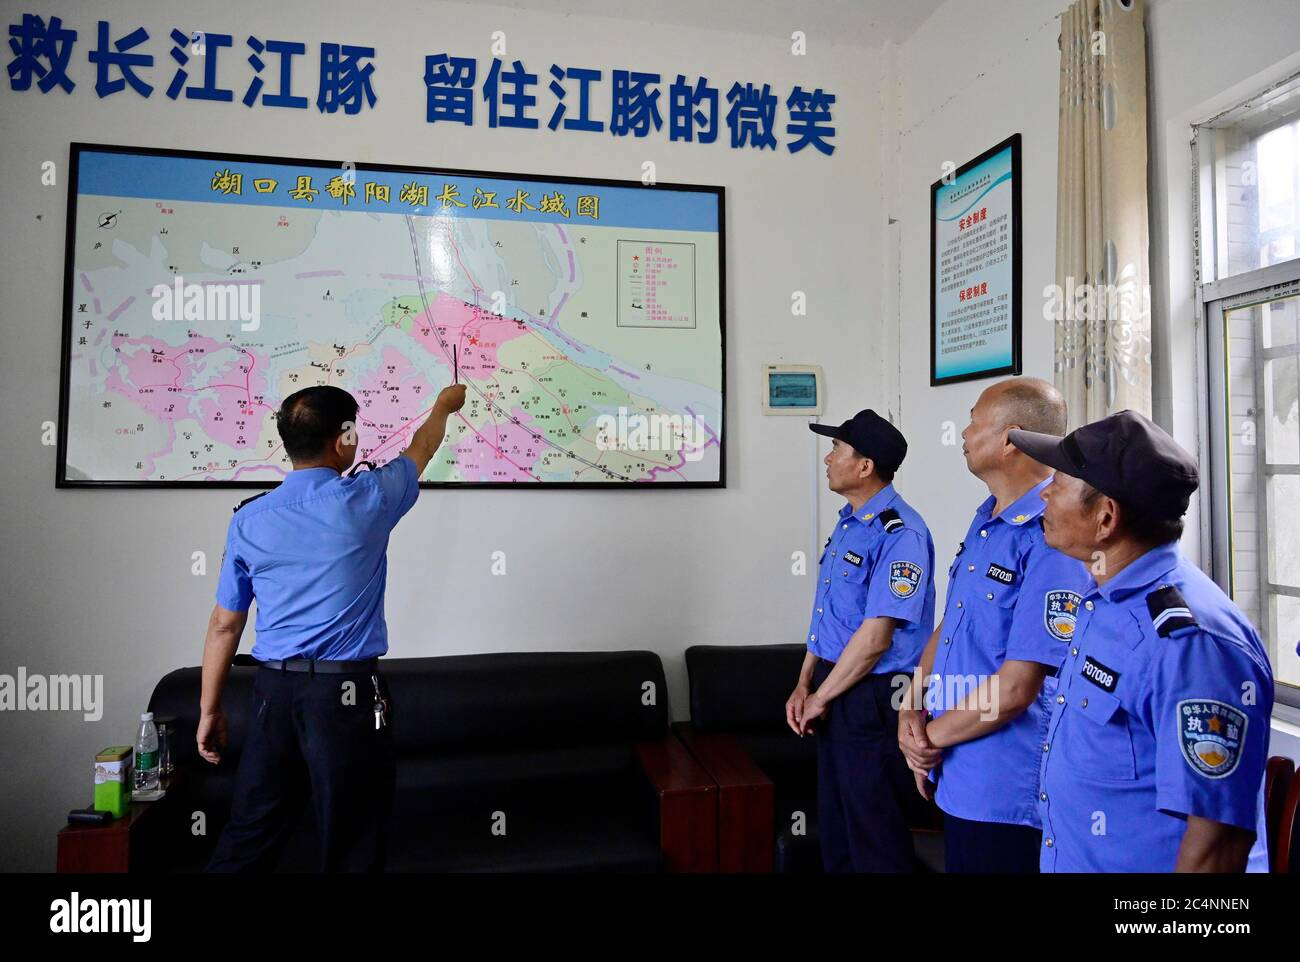 (200628) -- NANCHANG, June 28, 2020 (Xinhua) -- Members of a Yangtze finless porpoise protection team attend a mission briefing ahead of a daily patrol on the Poyang Lake in Hukou County, east China's Jiangxi Province, June 8, 2020. Eight of the 11 team members are fishermen-turned finless porpoise protectors who patrol the Poyang Lake on a daily basis. Their missions include dismantling illegal fishing facilities and preventing unlawful activities that damage the Poyang Lake's fisheries resources. China began a 10-year fishing moratorium from the beginning of this year in 332 conservation are Stock Photo